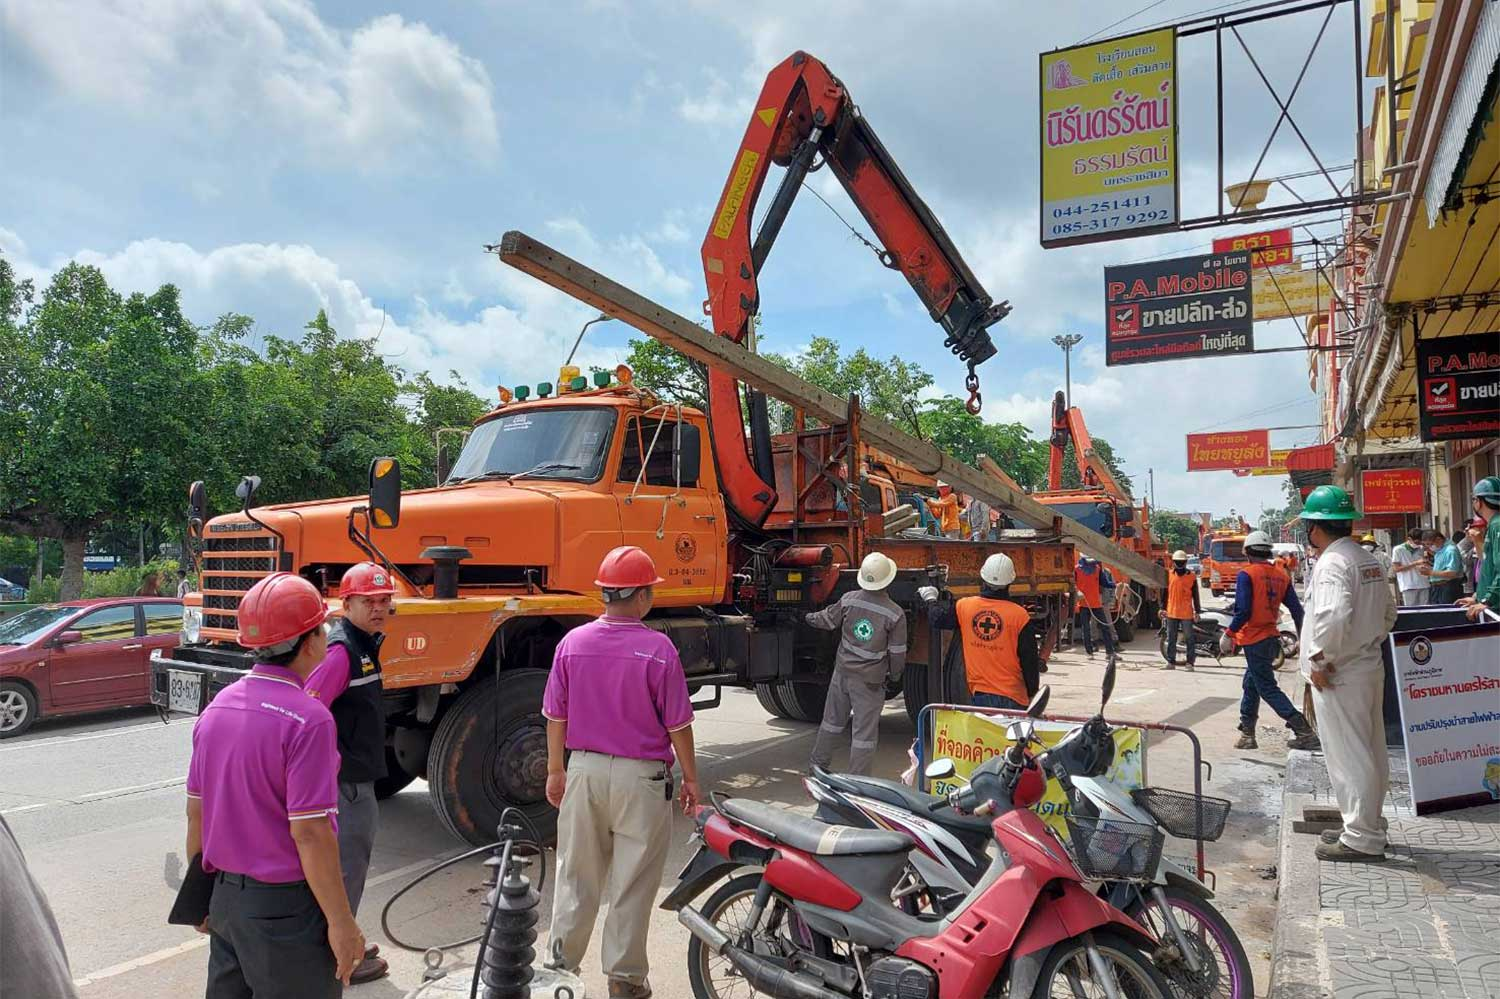 A concrete power pole is lifted onto a truck after Provincial Electricity Authority workers finish moving electrical wires and cables underground in parts of Nakhon Ratchasima on Saturday. (Photo by Prasit Tangprasert)